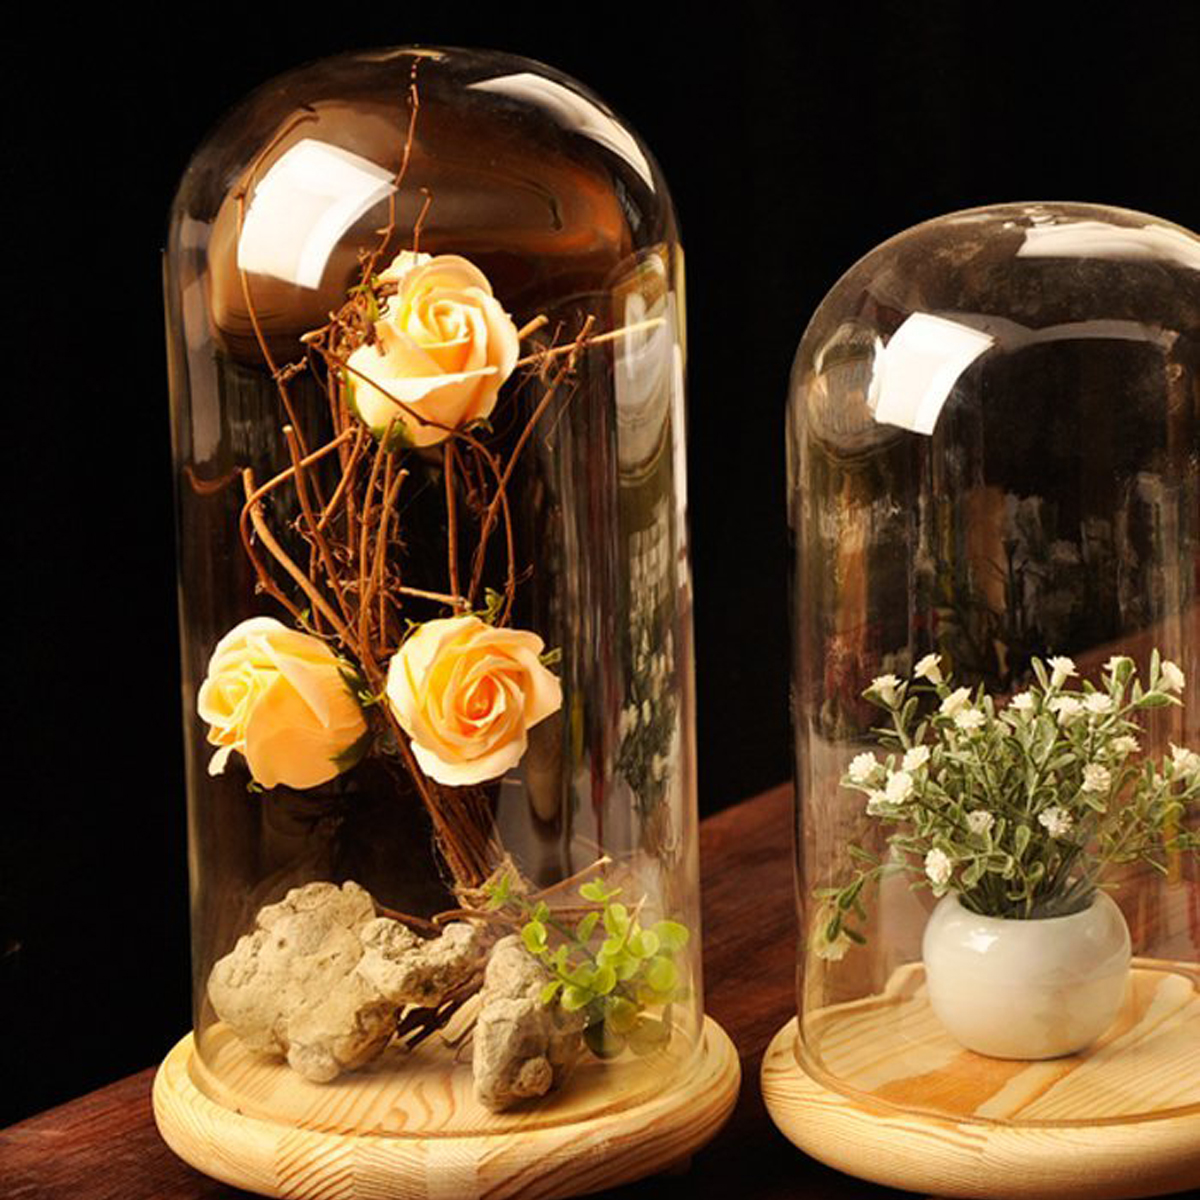 Clear Glass Dome Cover Glass Display Dome Cloche Bell Jar DIY Display Stand Decor Lamp Shade Vase Home Decor Ornament リビング シャンデリア